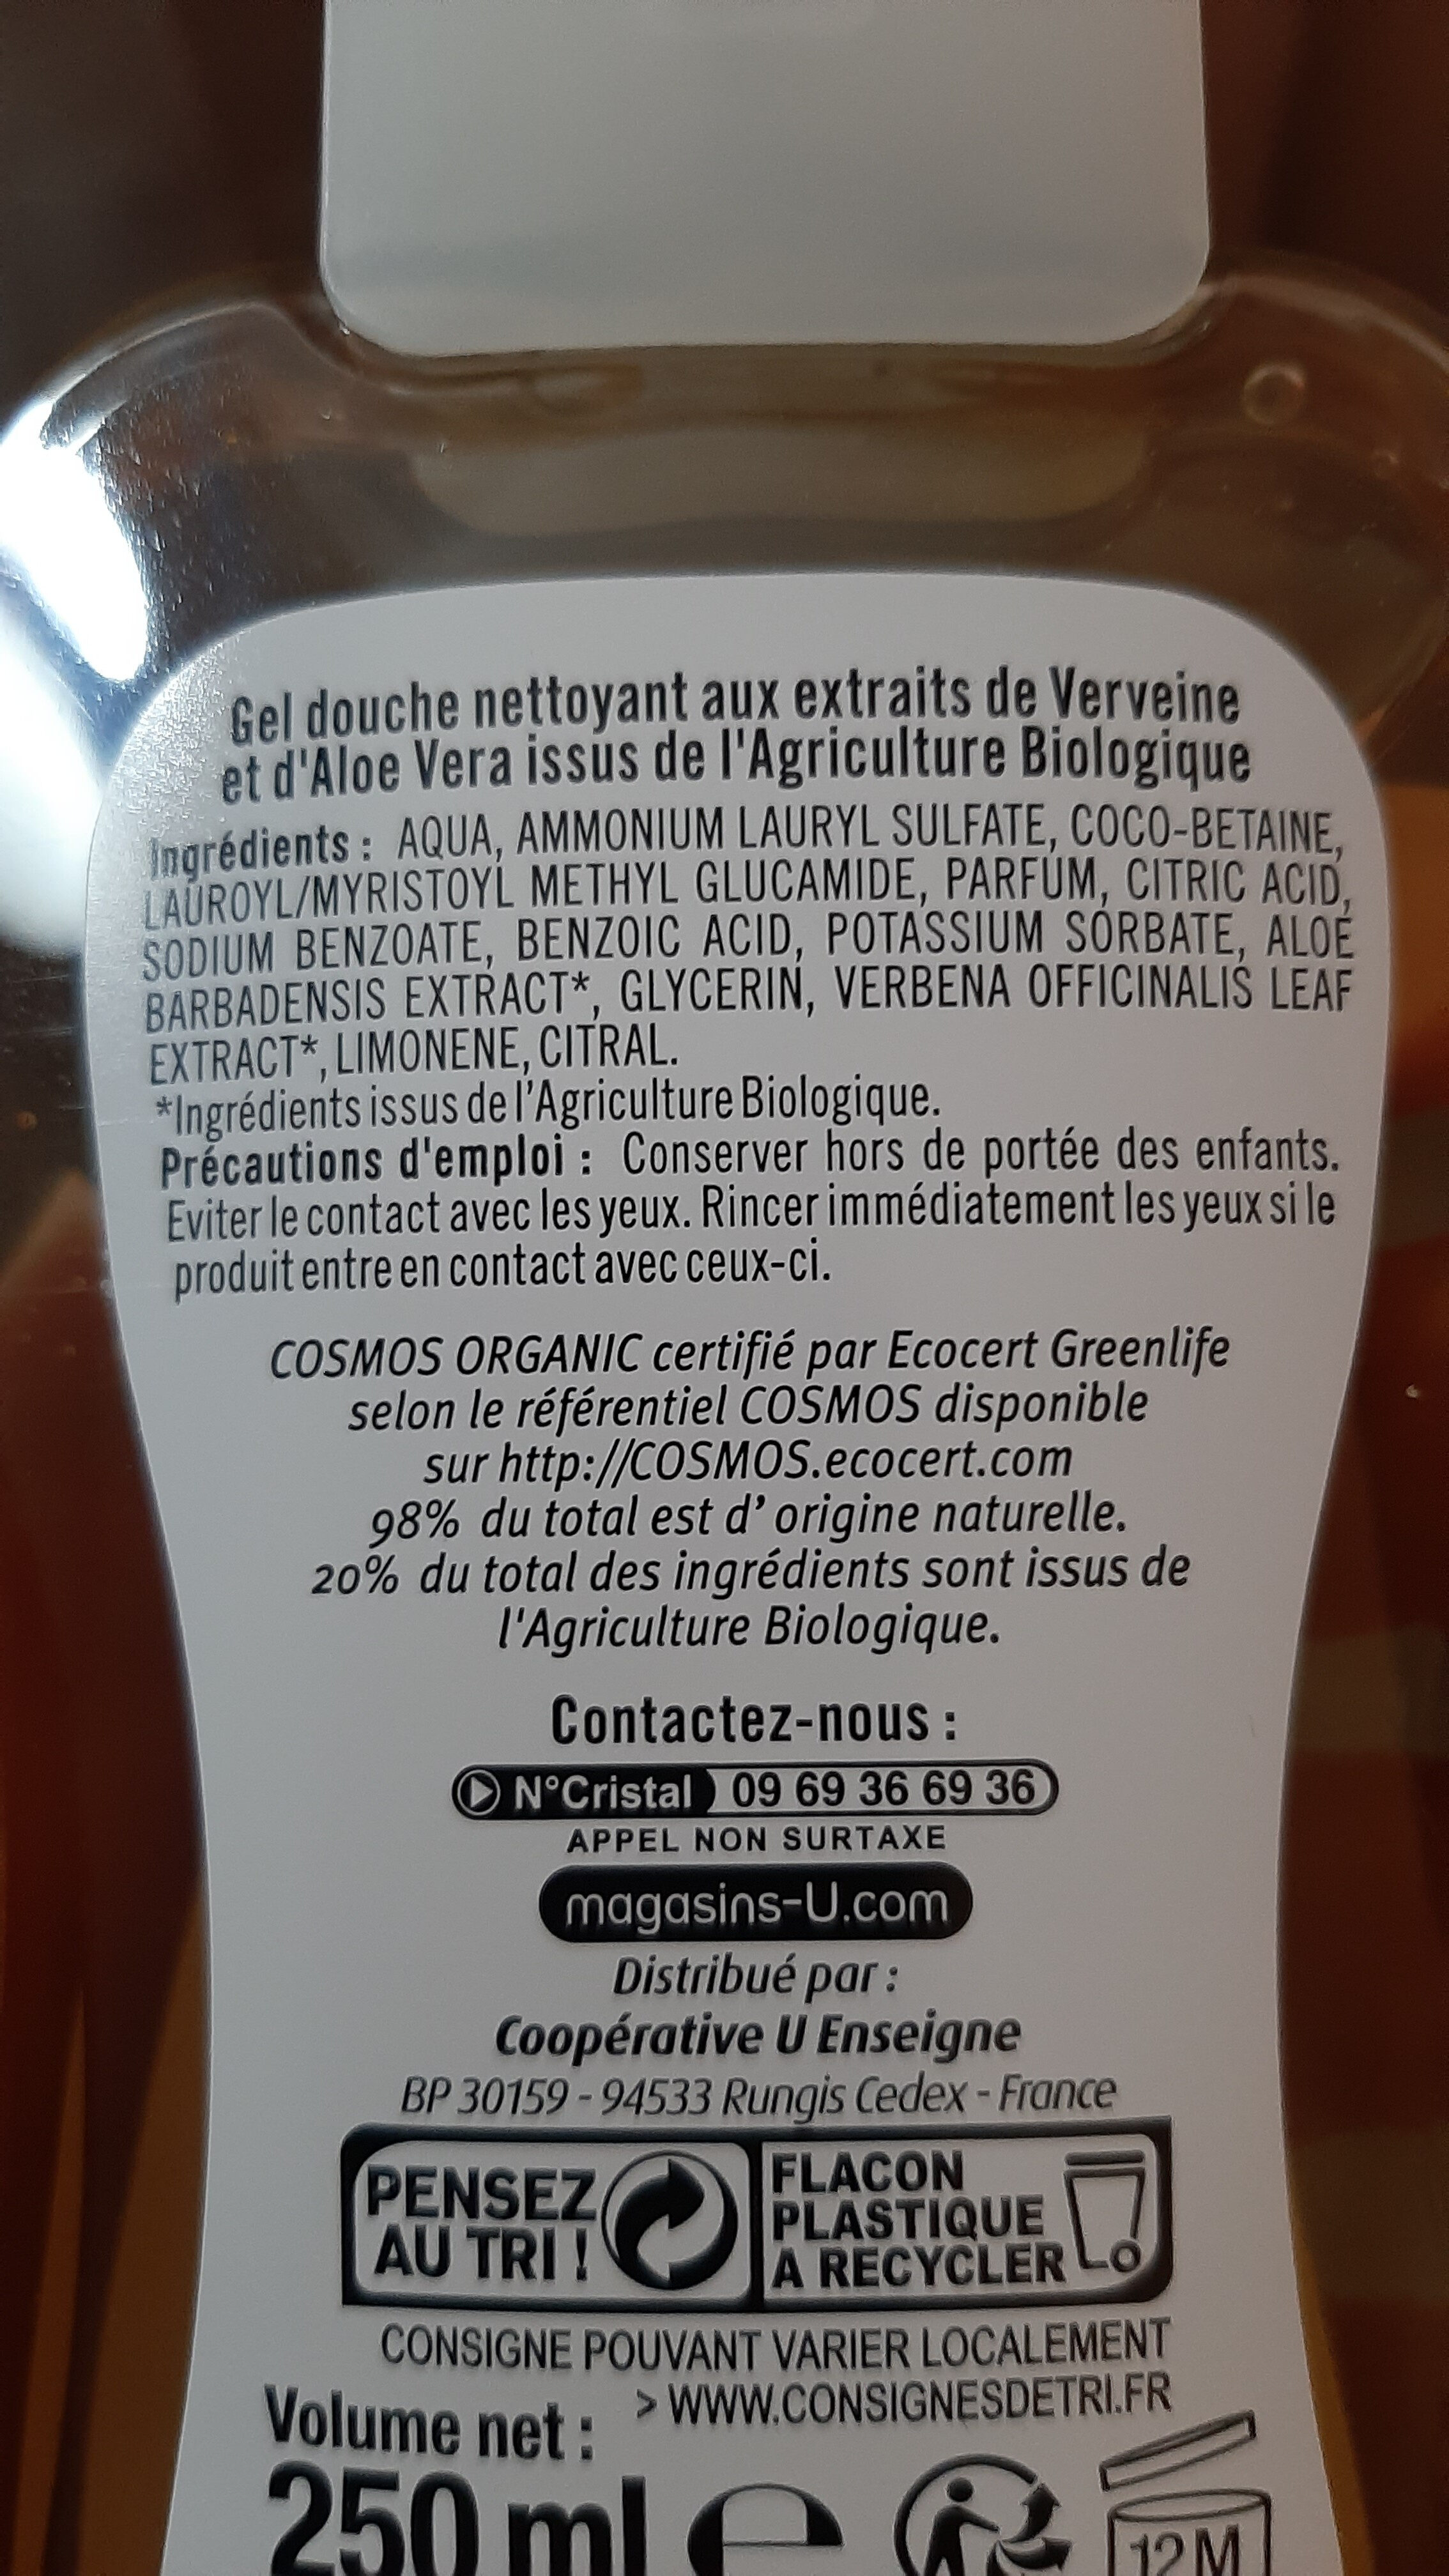 gel douche bio verveine aloe vera - Ingredients - fr